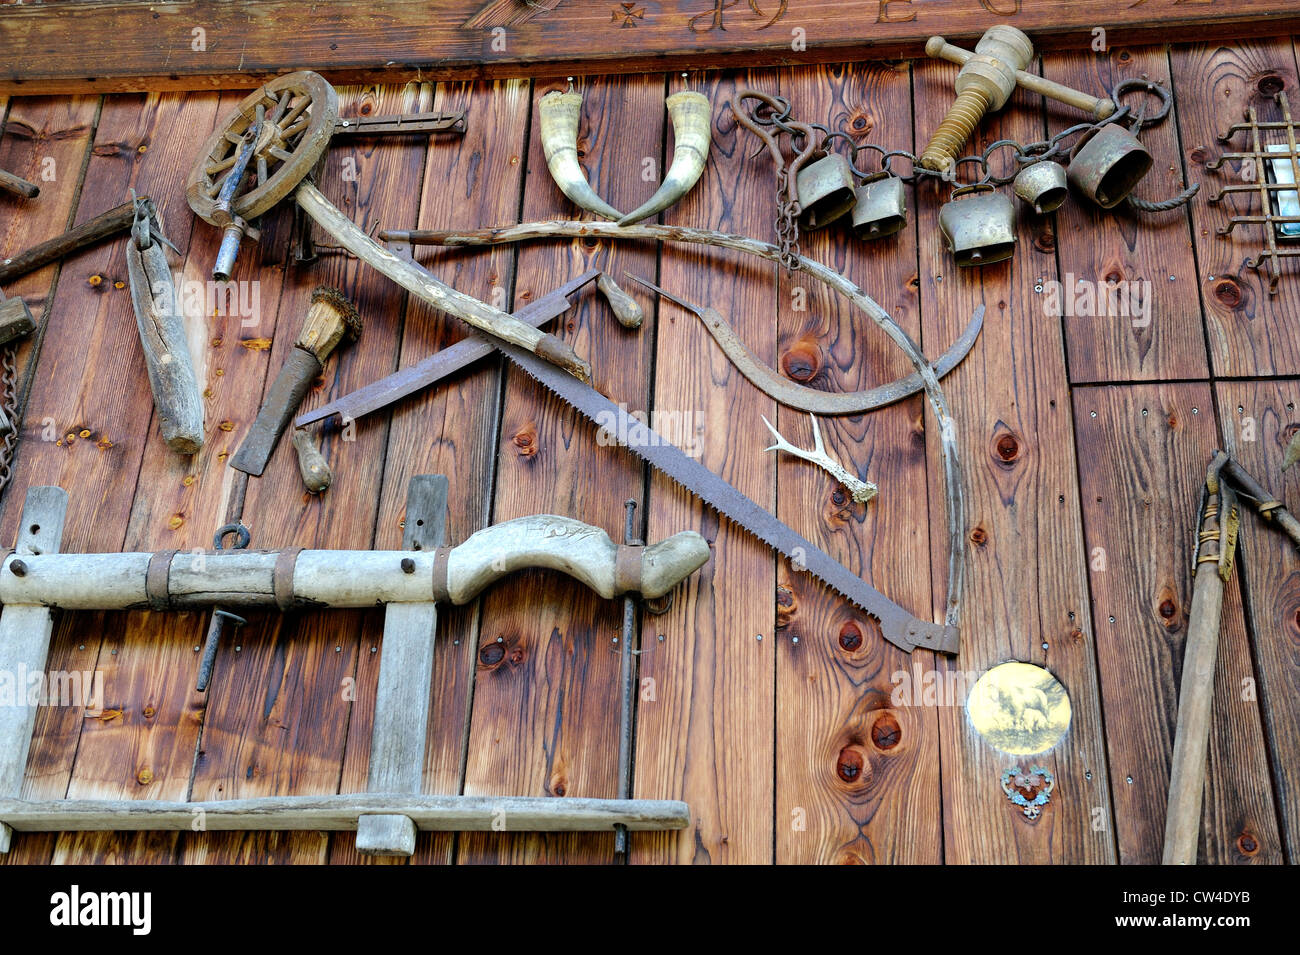 Old Woodworking Tools And Farming Implements Fixed To The Side Of A